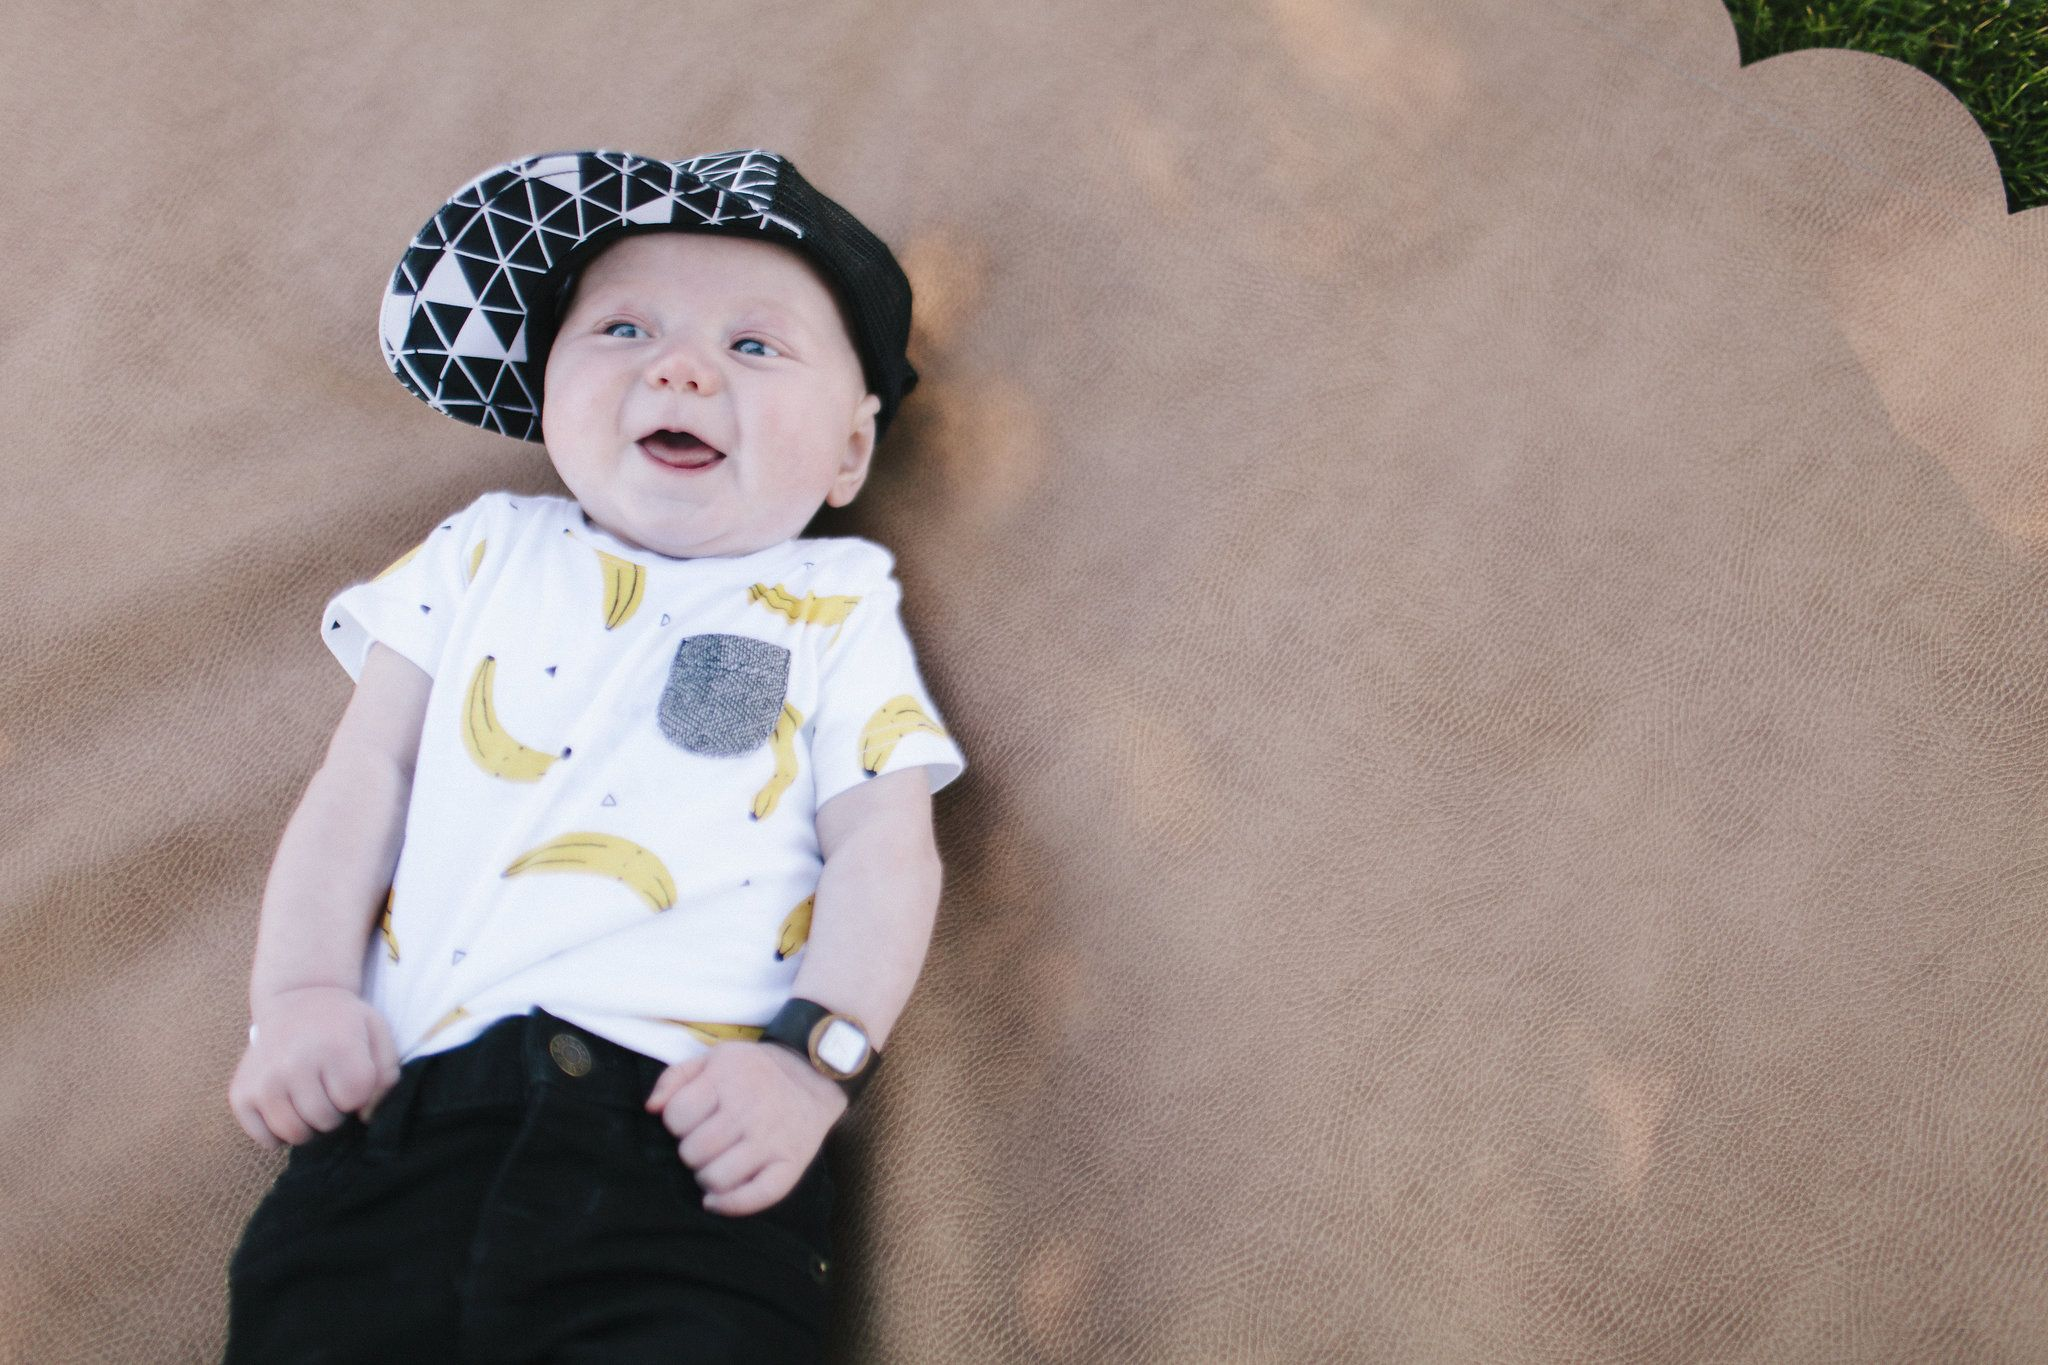 8da7cf5d1 Finally! The baby boy gear is out! Flat brim hats and baby watches ...